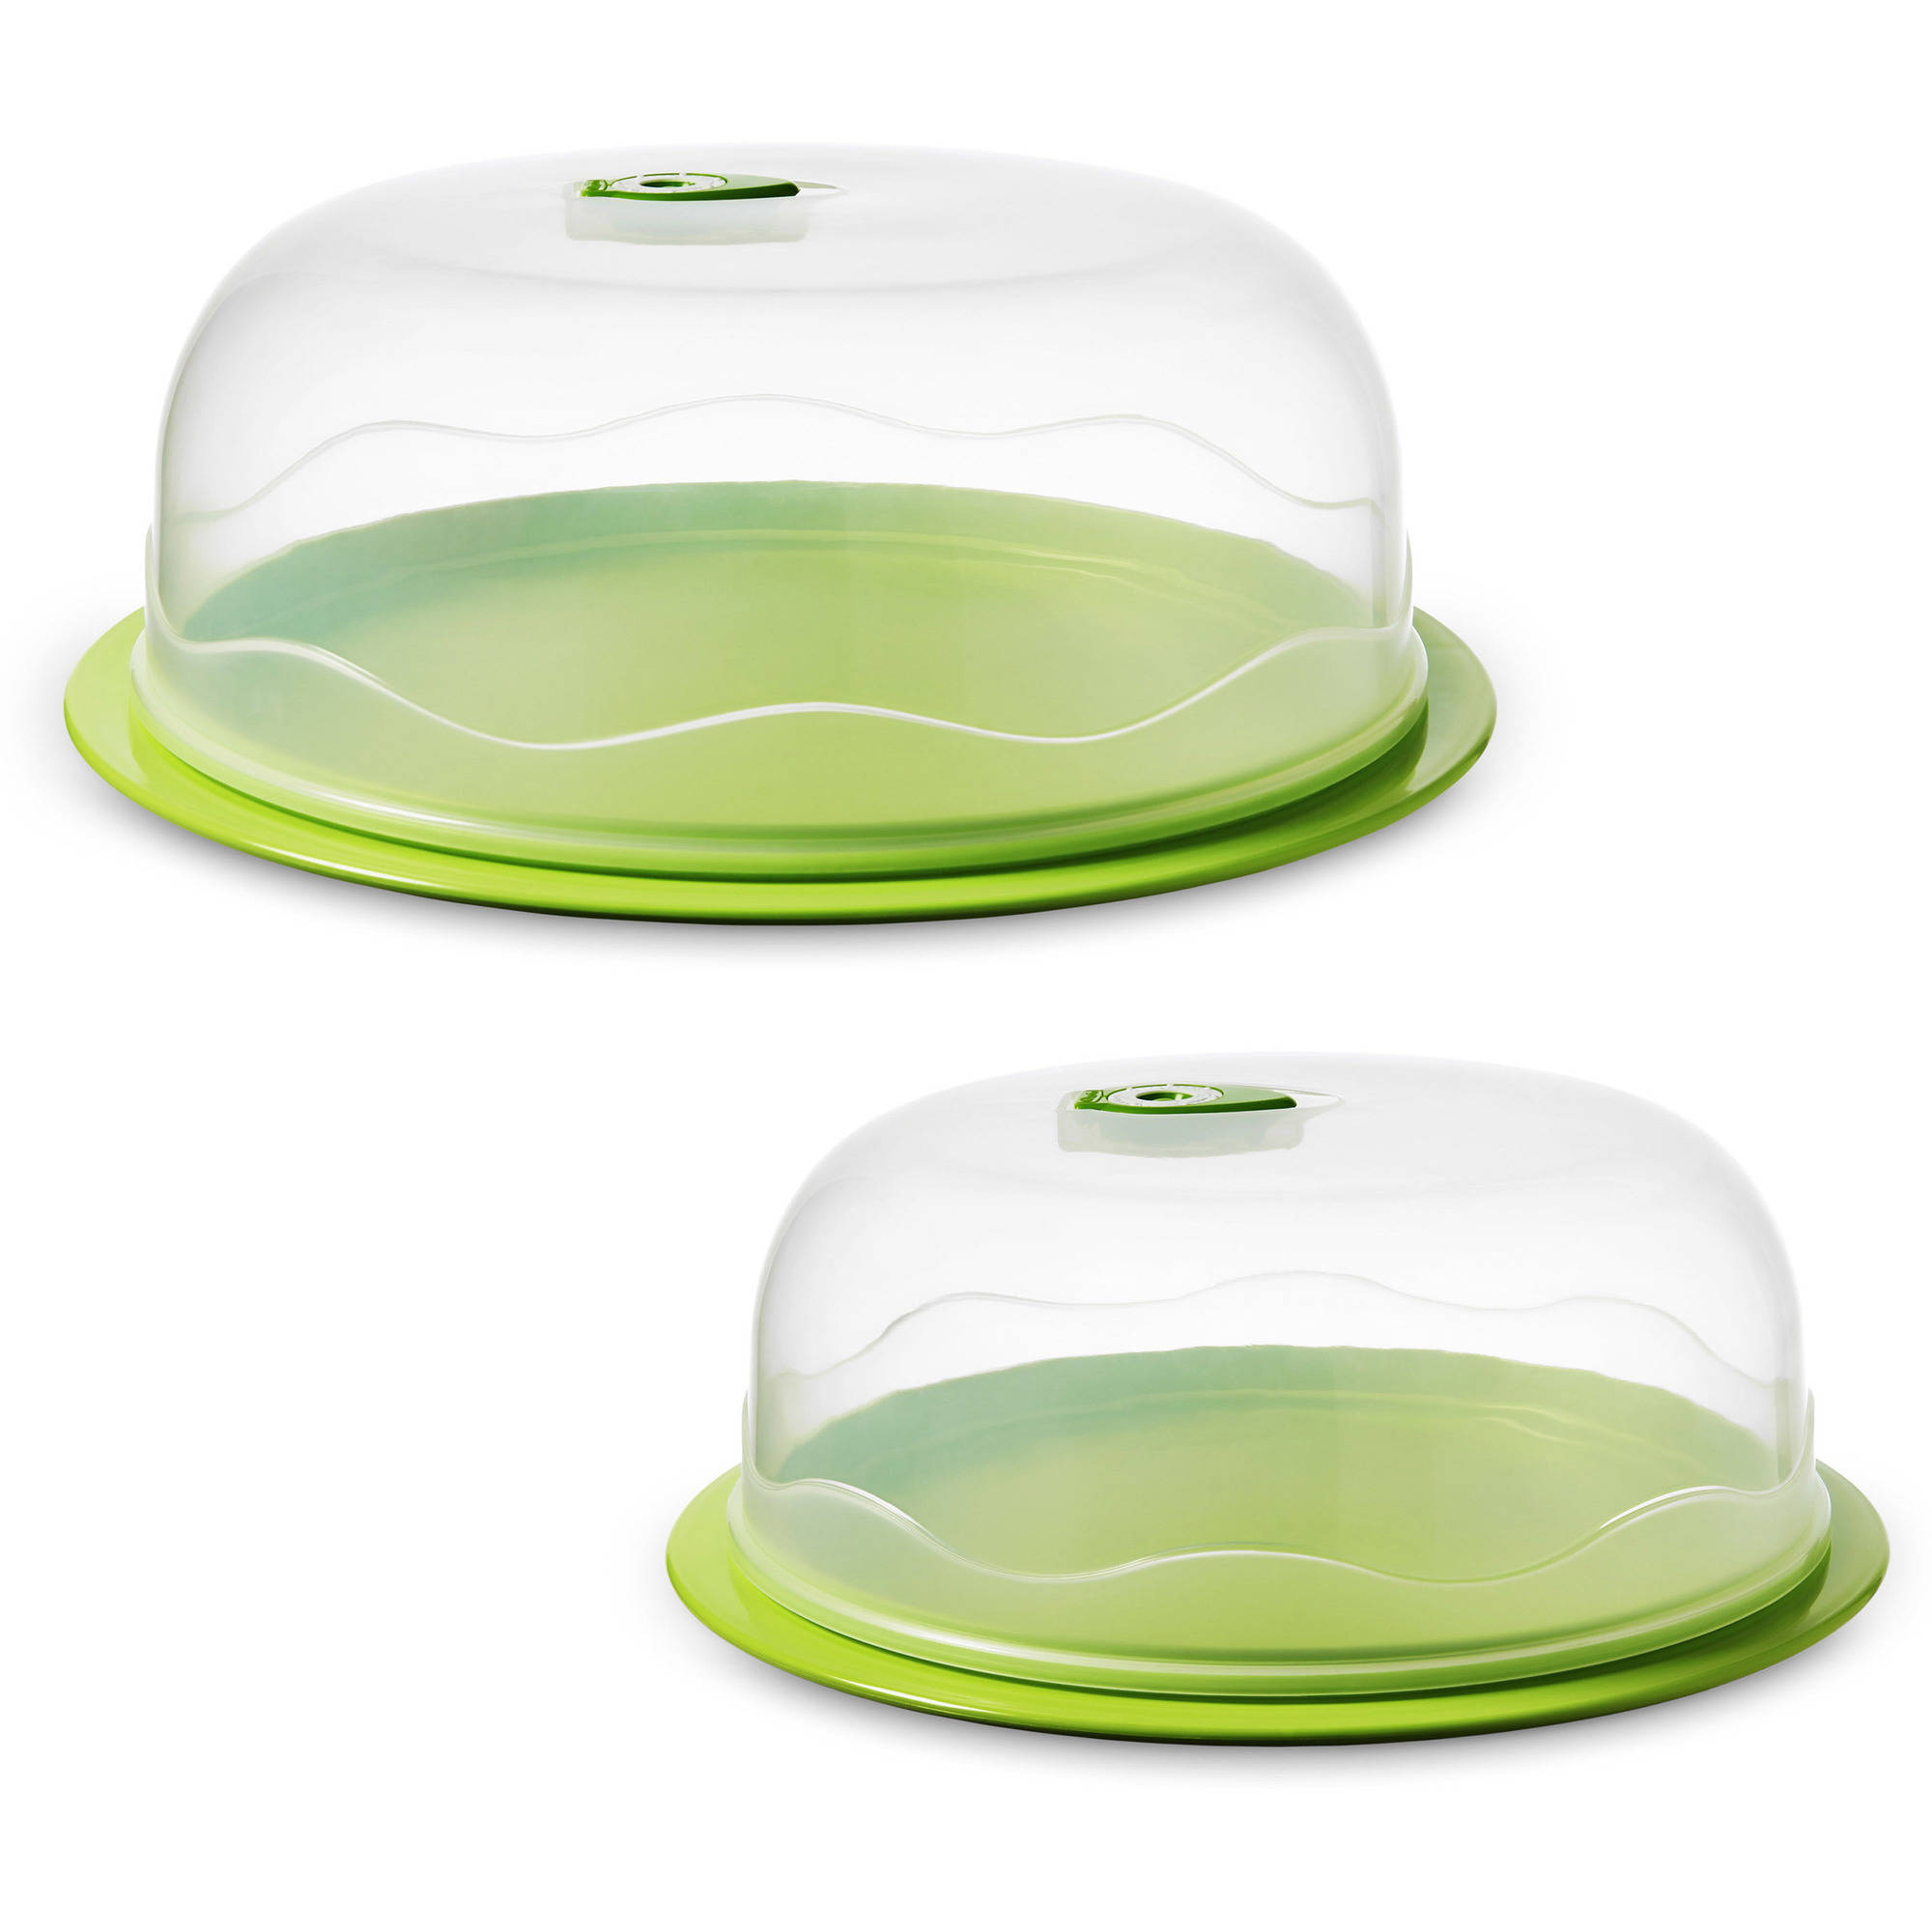 Ozeri INSTAVAC Ready-Serve Domed Food Storage Container, 4-Piece Nesting Set with Vacuum Seal, Clear